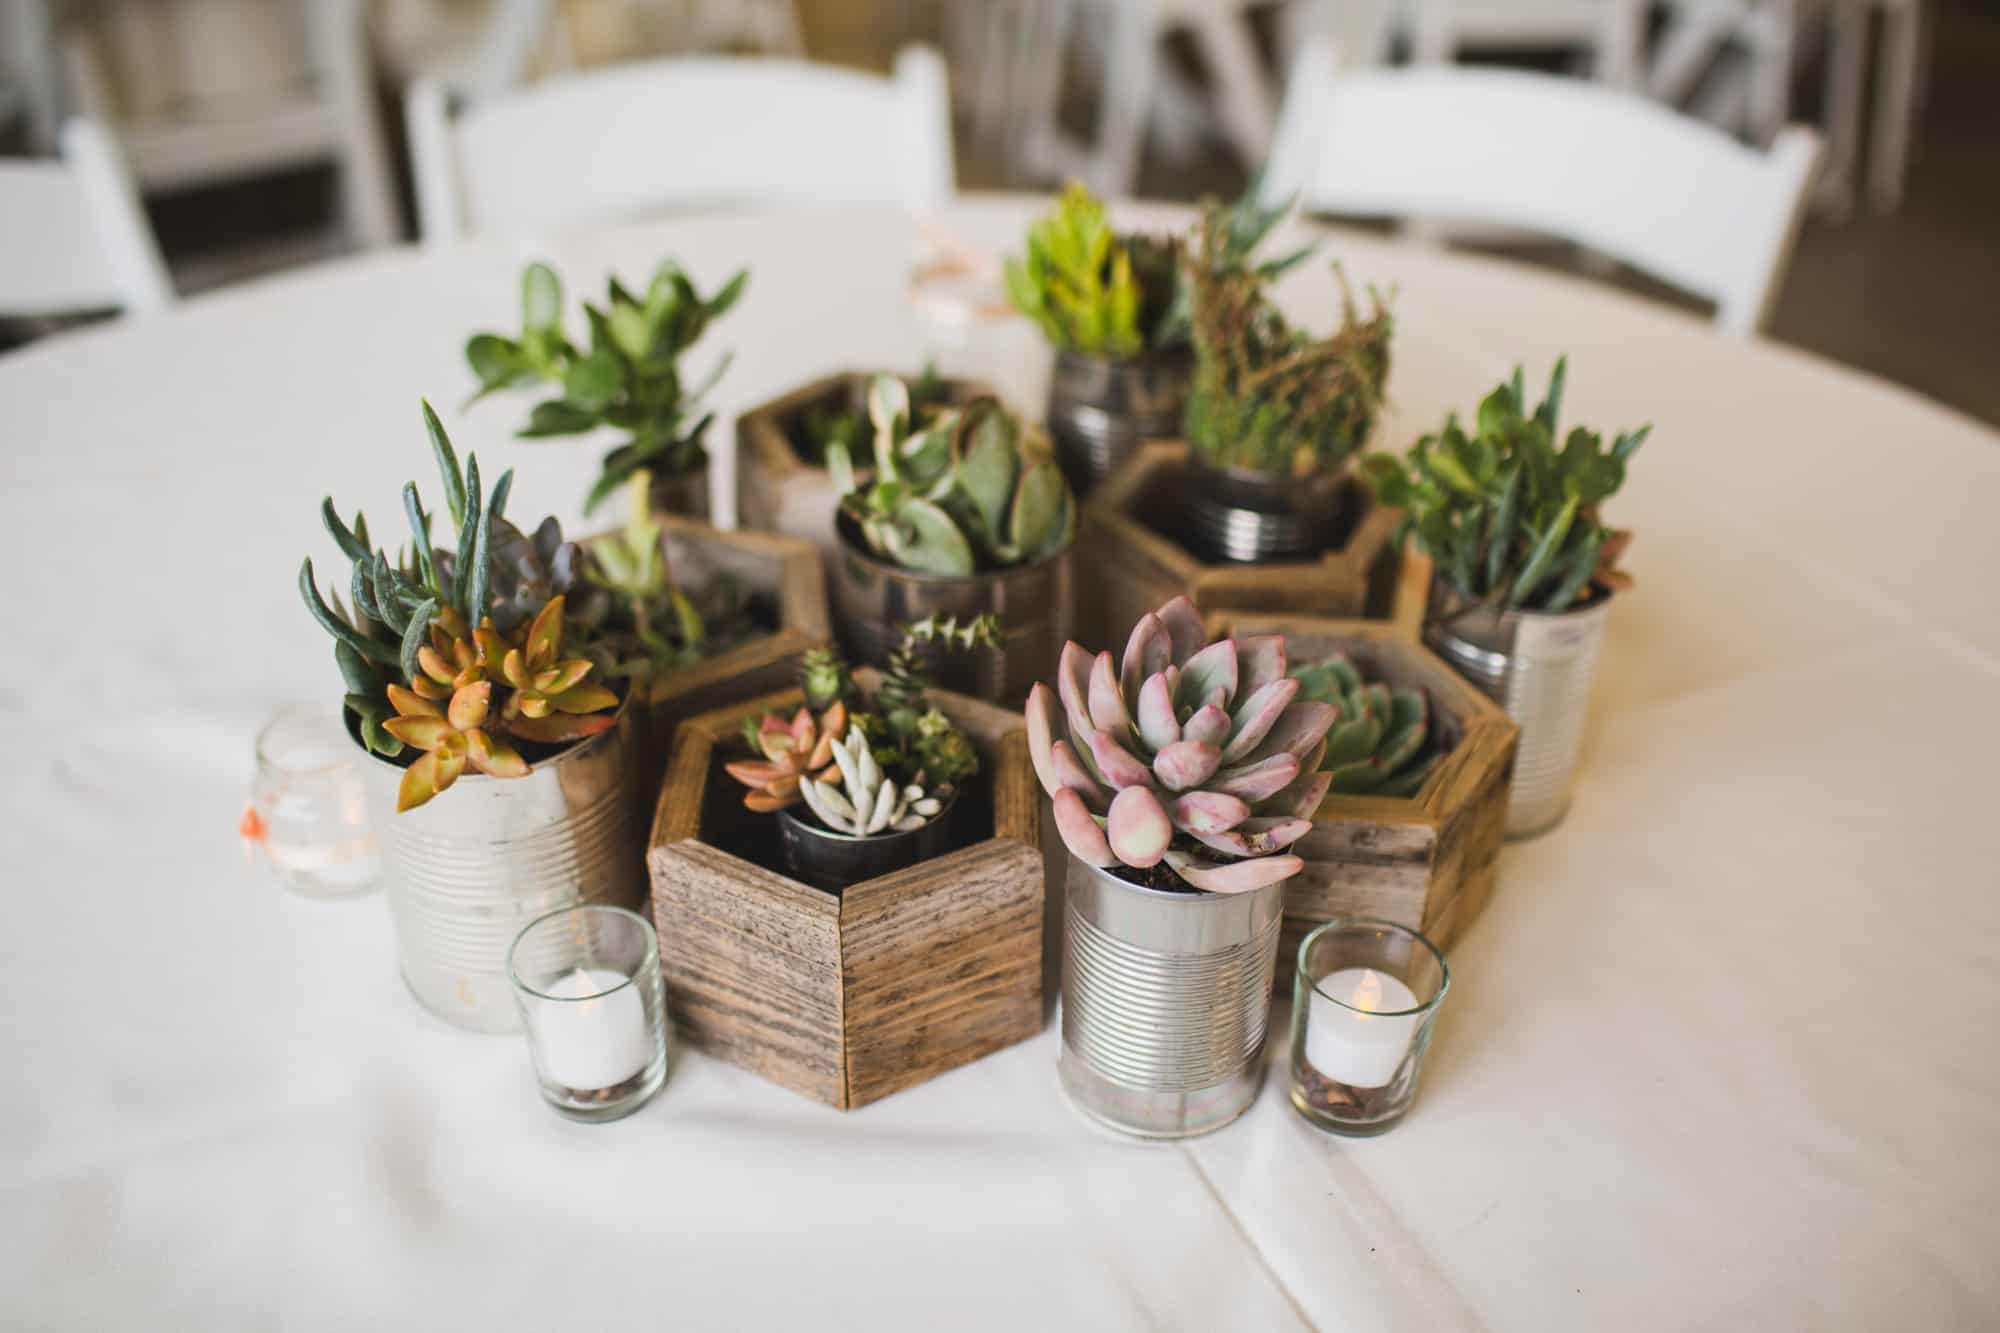 15 wedding centerpieces that you can diy diy succulents centerpieces in recycled planters solutioingenieria Images